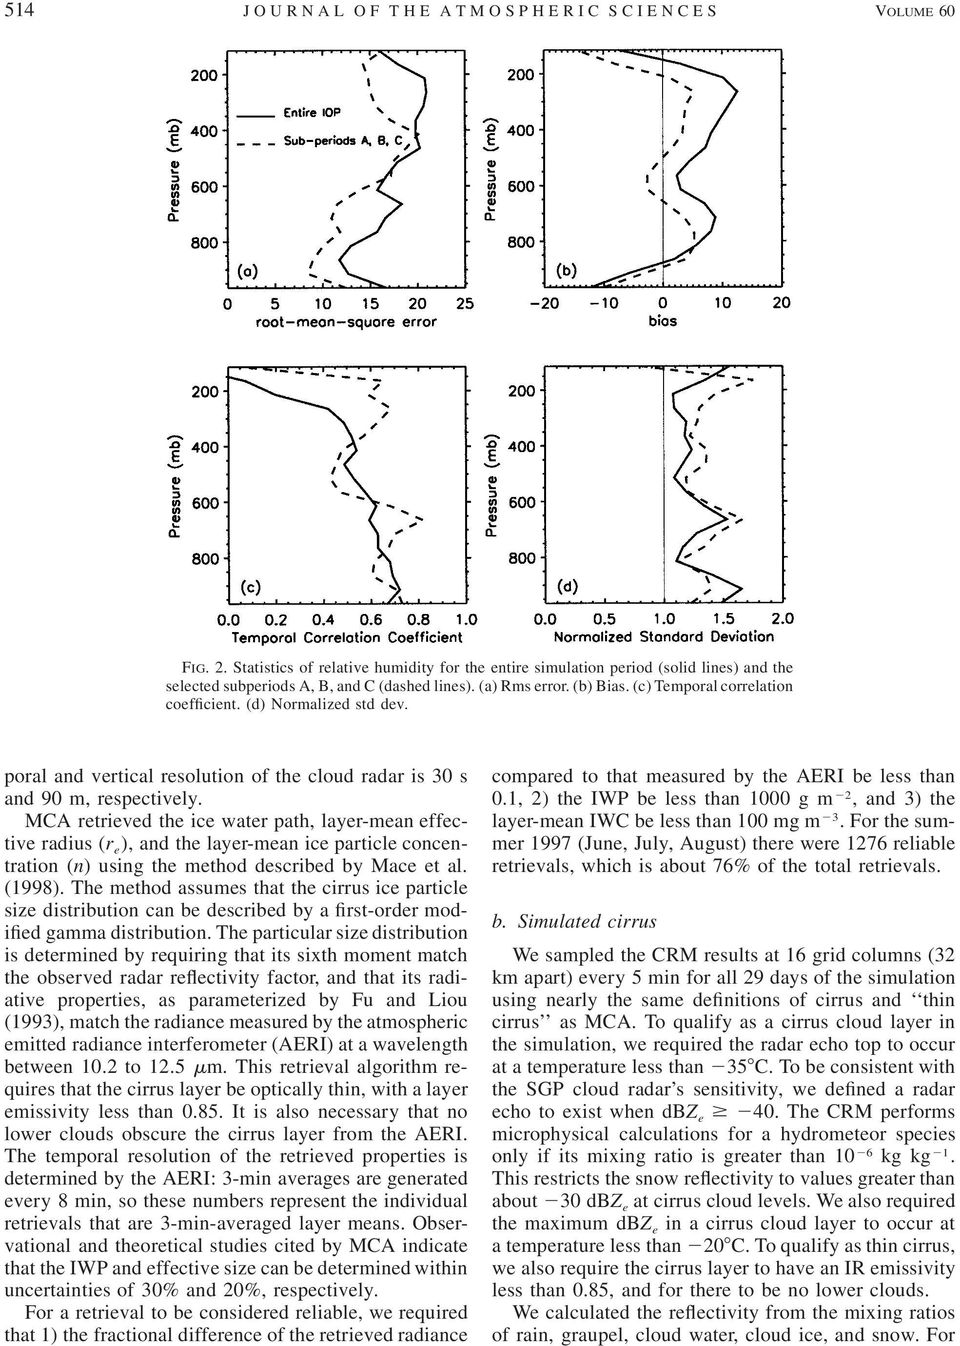 MCA retrieved the ice water path, layer-mean effective radius (r e ), and the layer-mean ice particle concentration (n) using the method described by Mace et al. (1998).